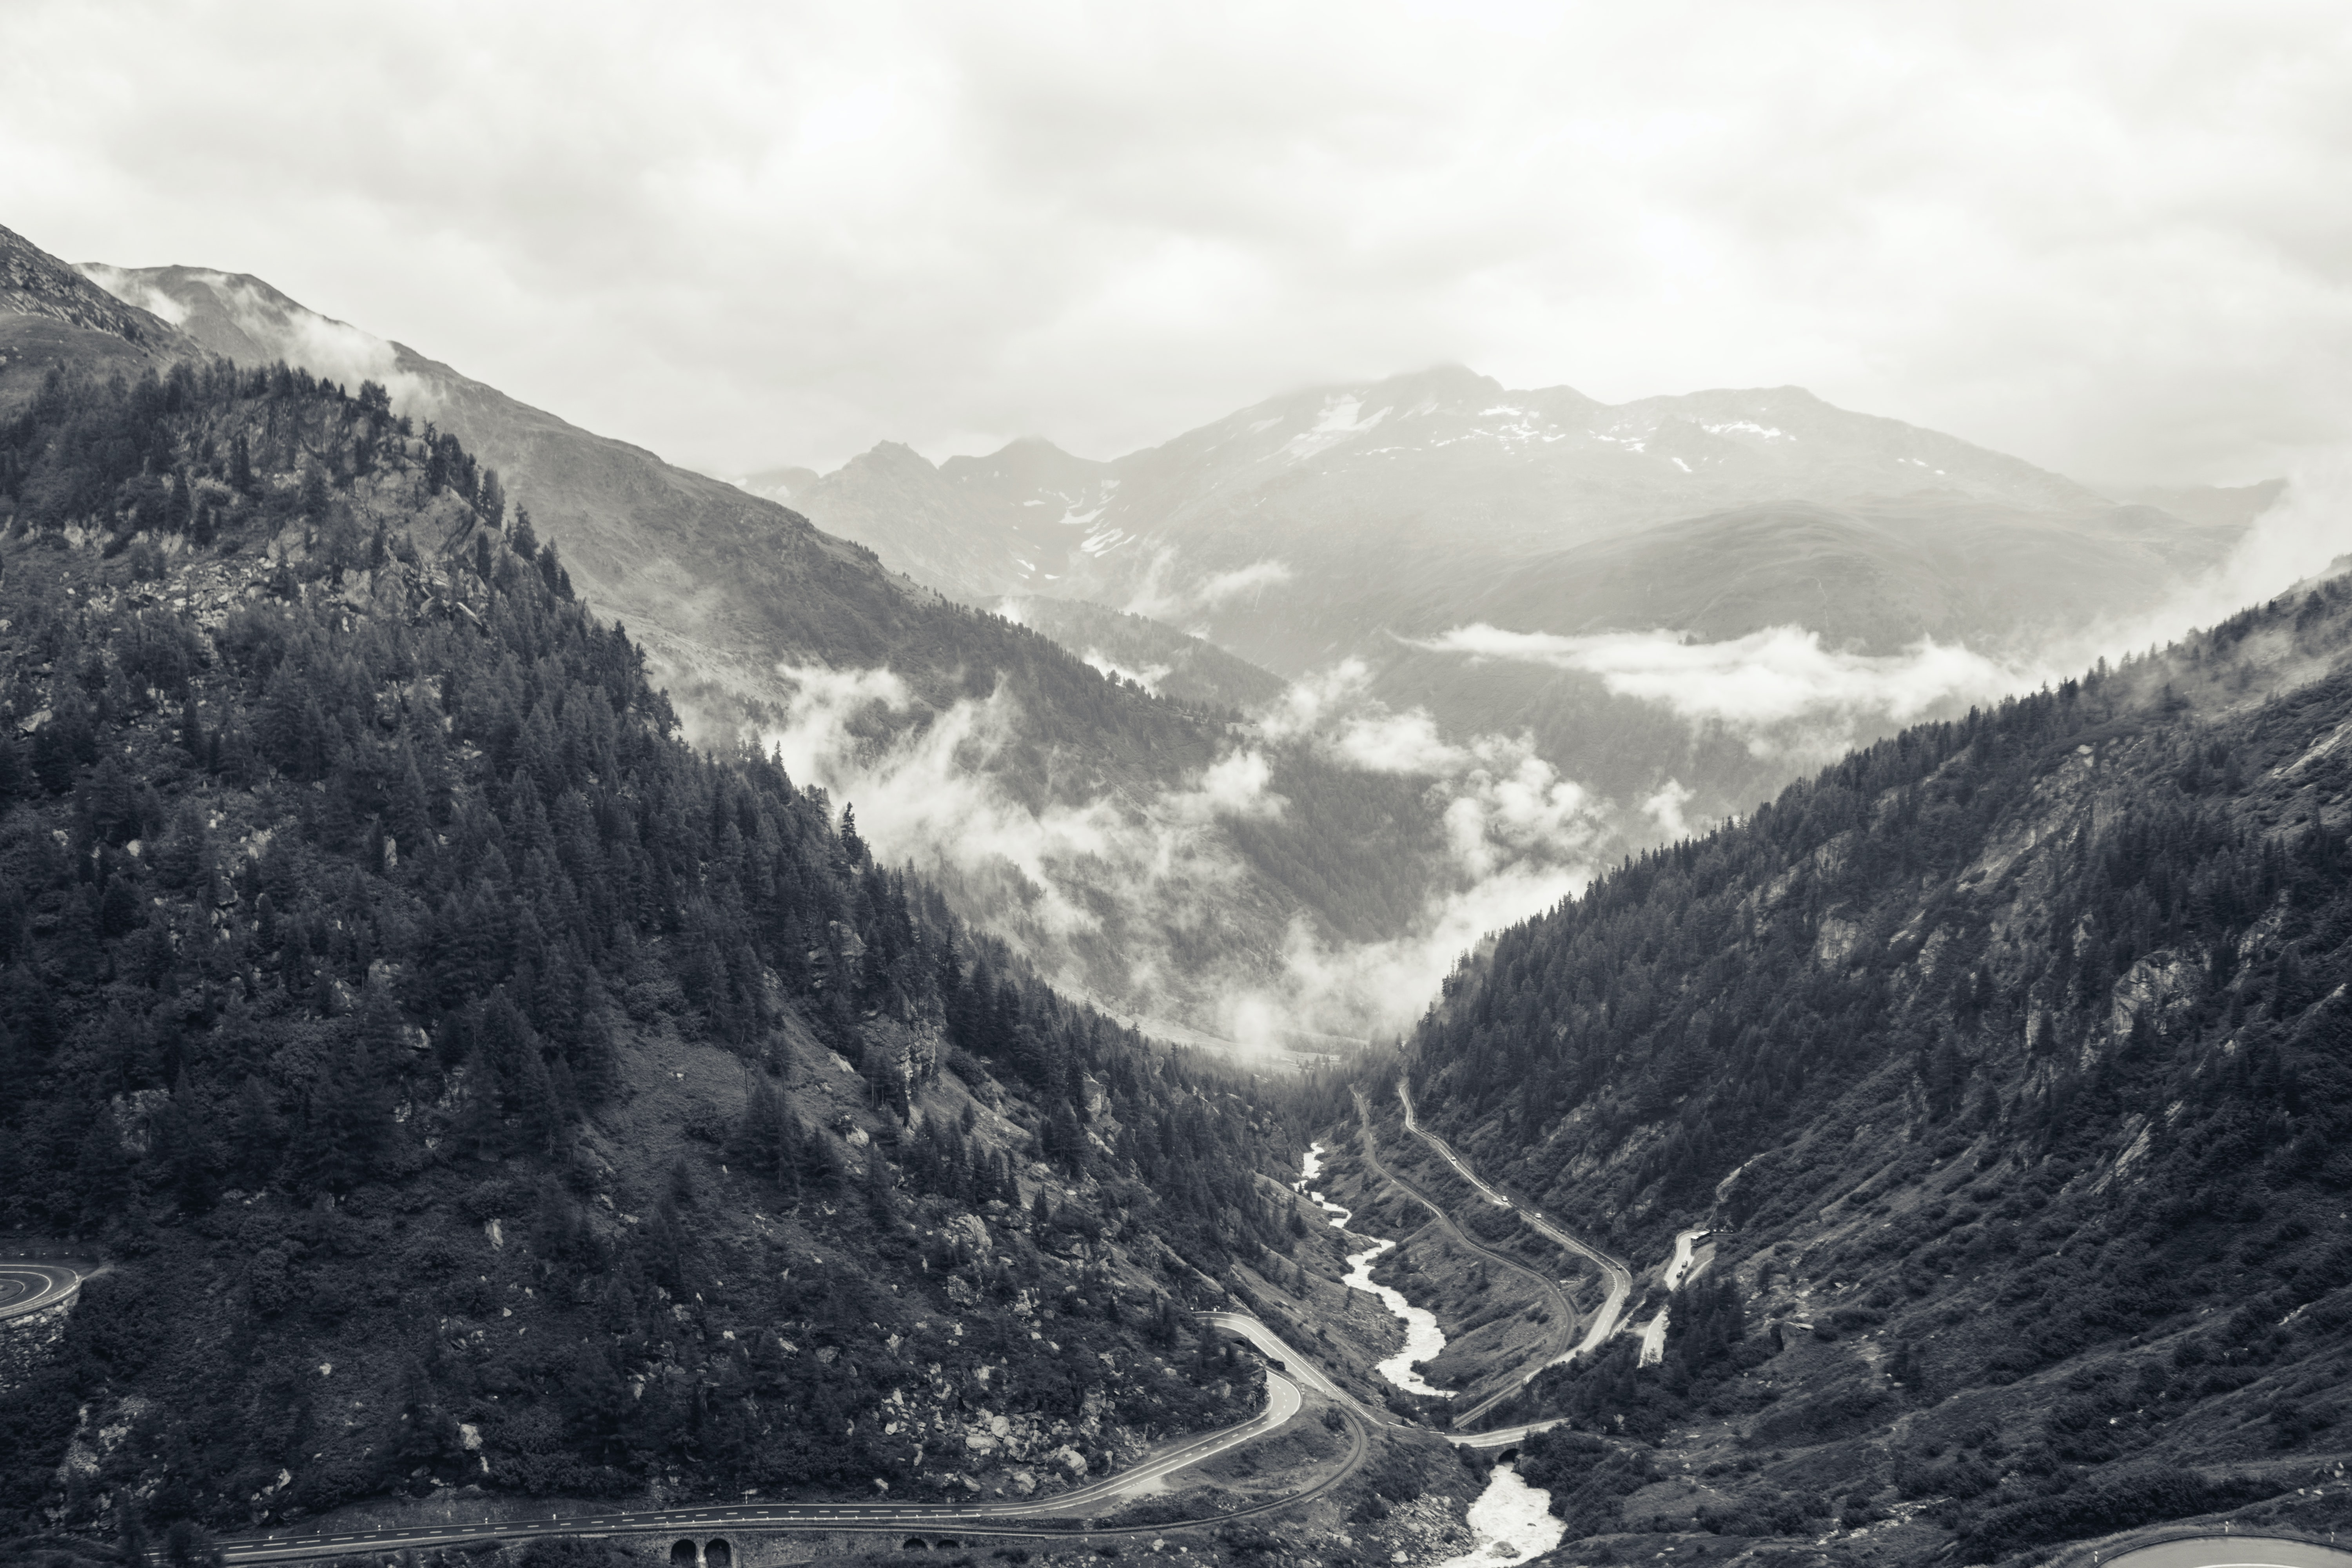 A desaturated shot of clouds of fog over a small river in a mountain pass